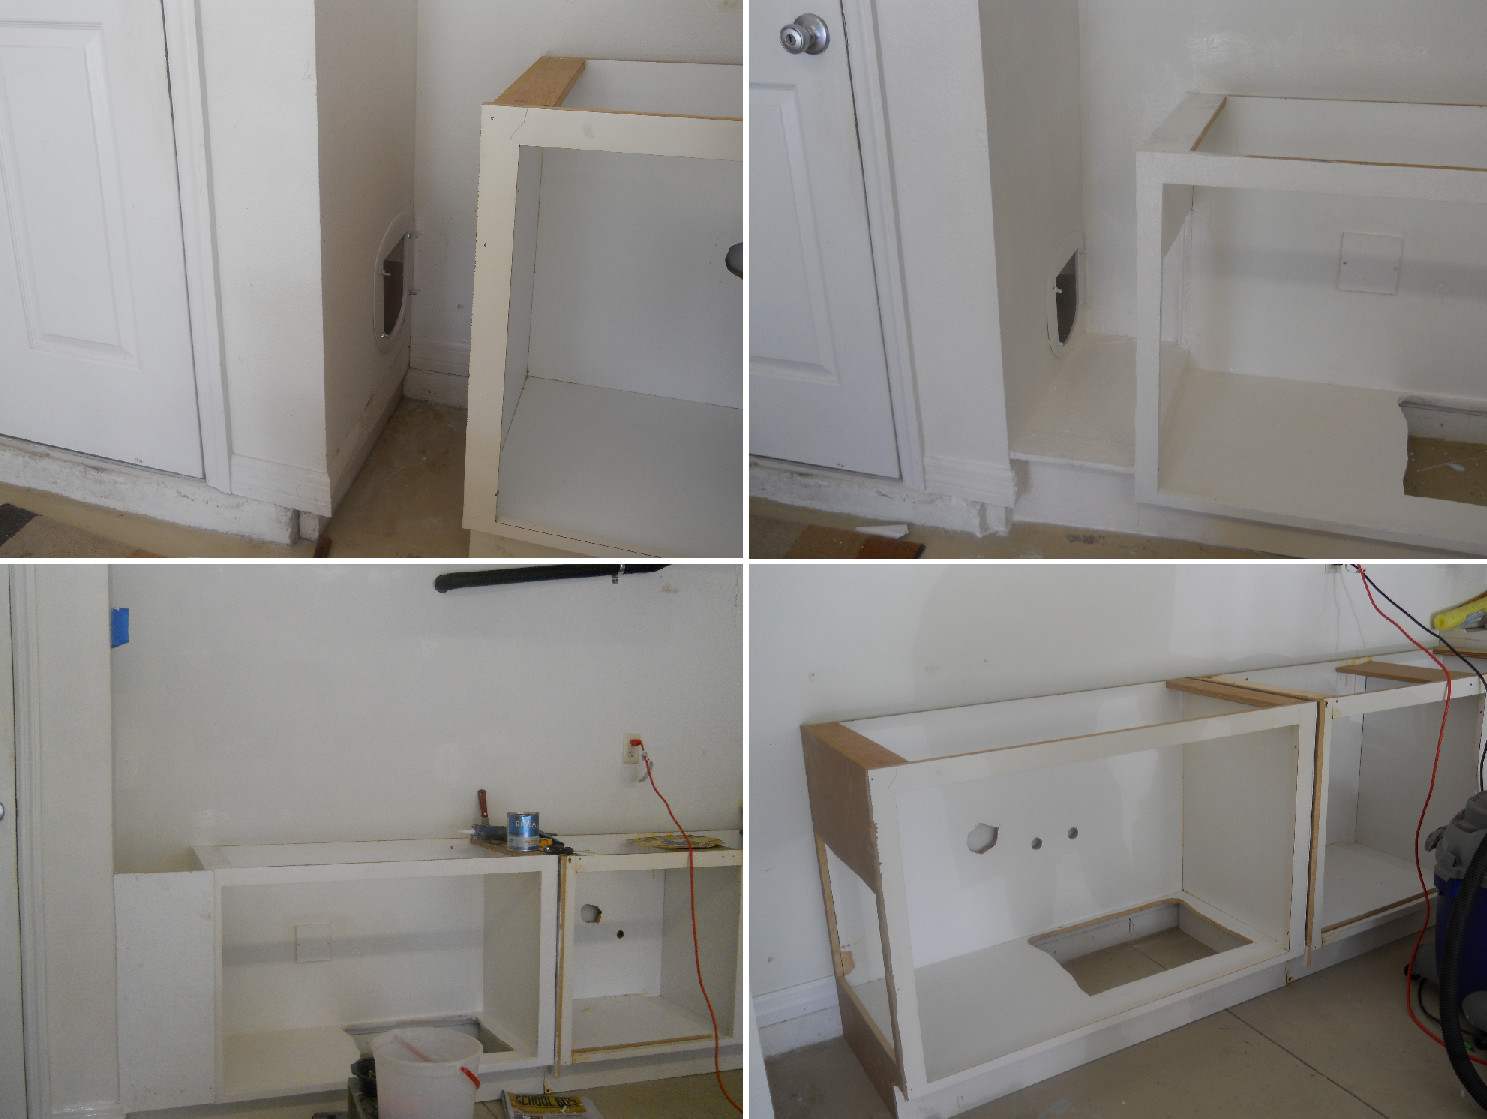 Best ideas about DIY Litter Box Enclosure . Save or Pin DIY Litterbox Furniture A Reader s Creative Way of Hiding Now.